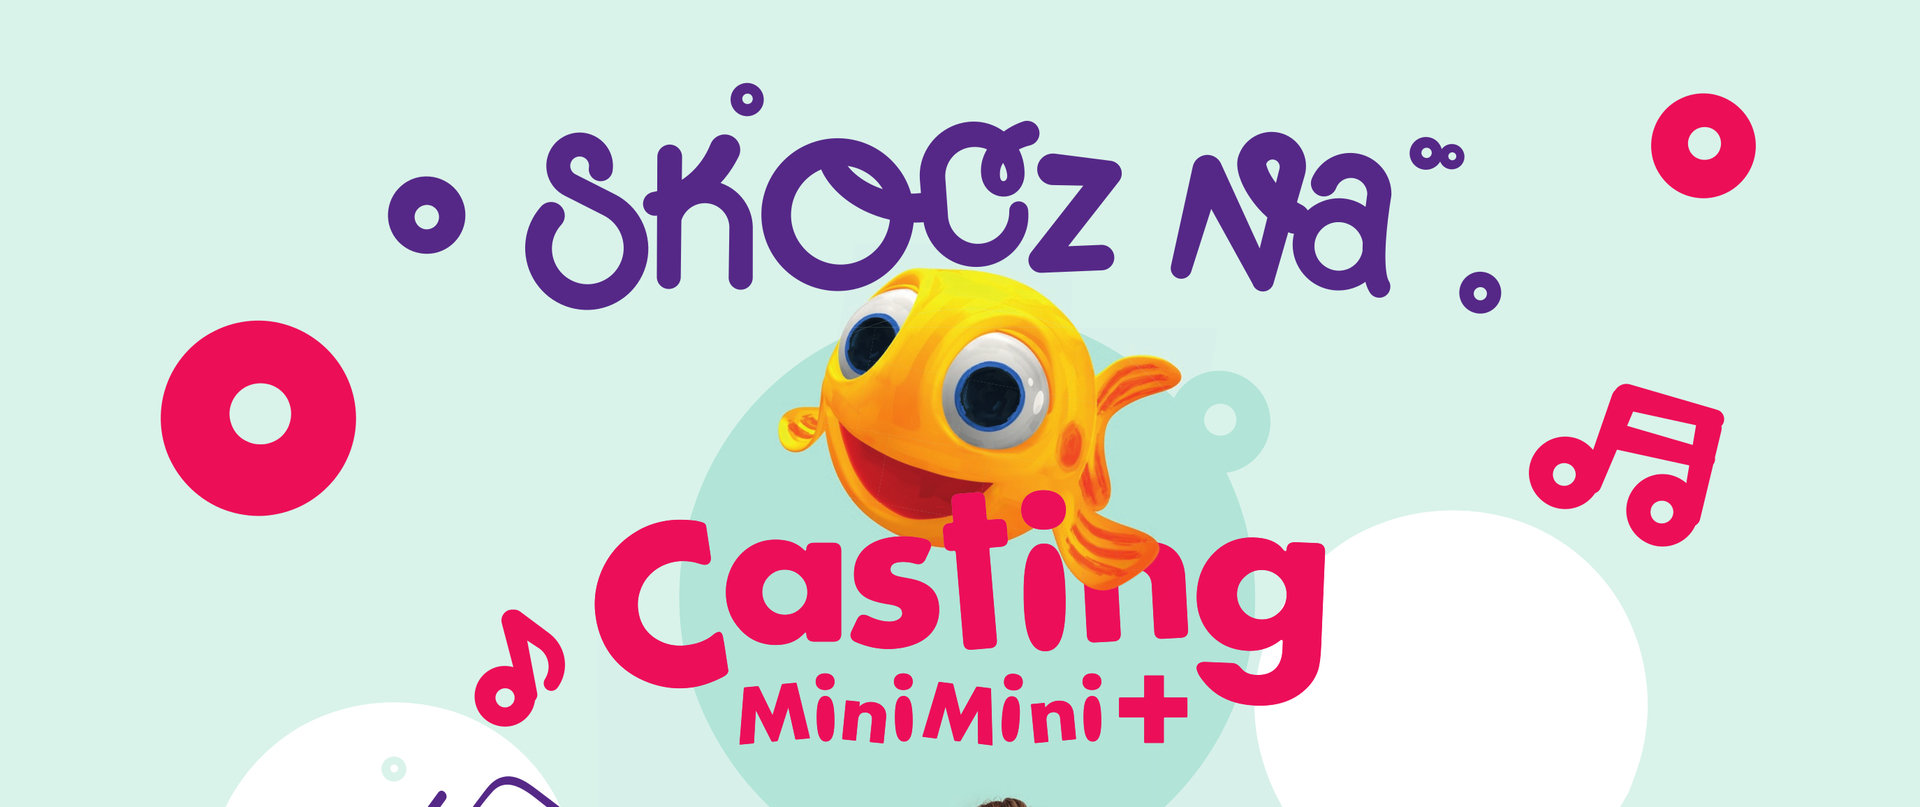 WIELKI CASTING MINIMINI+ JUŻ W TEN WEEKEND!